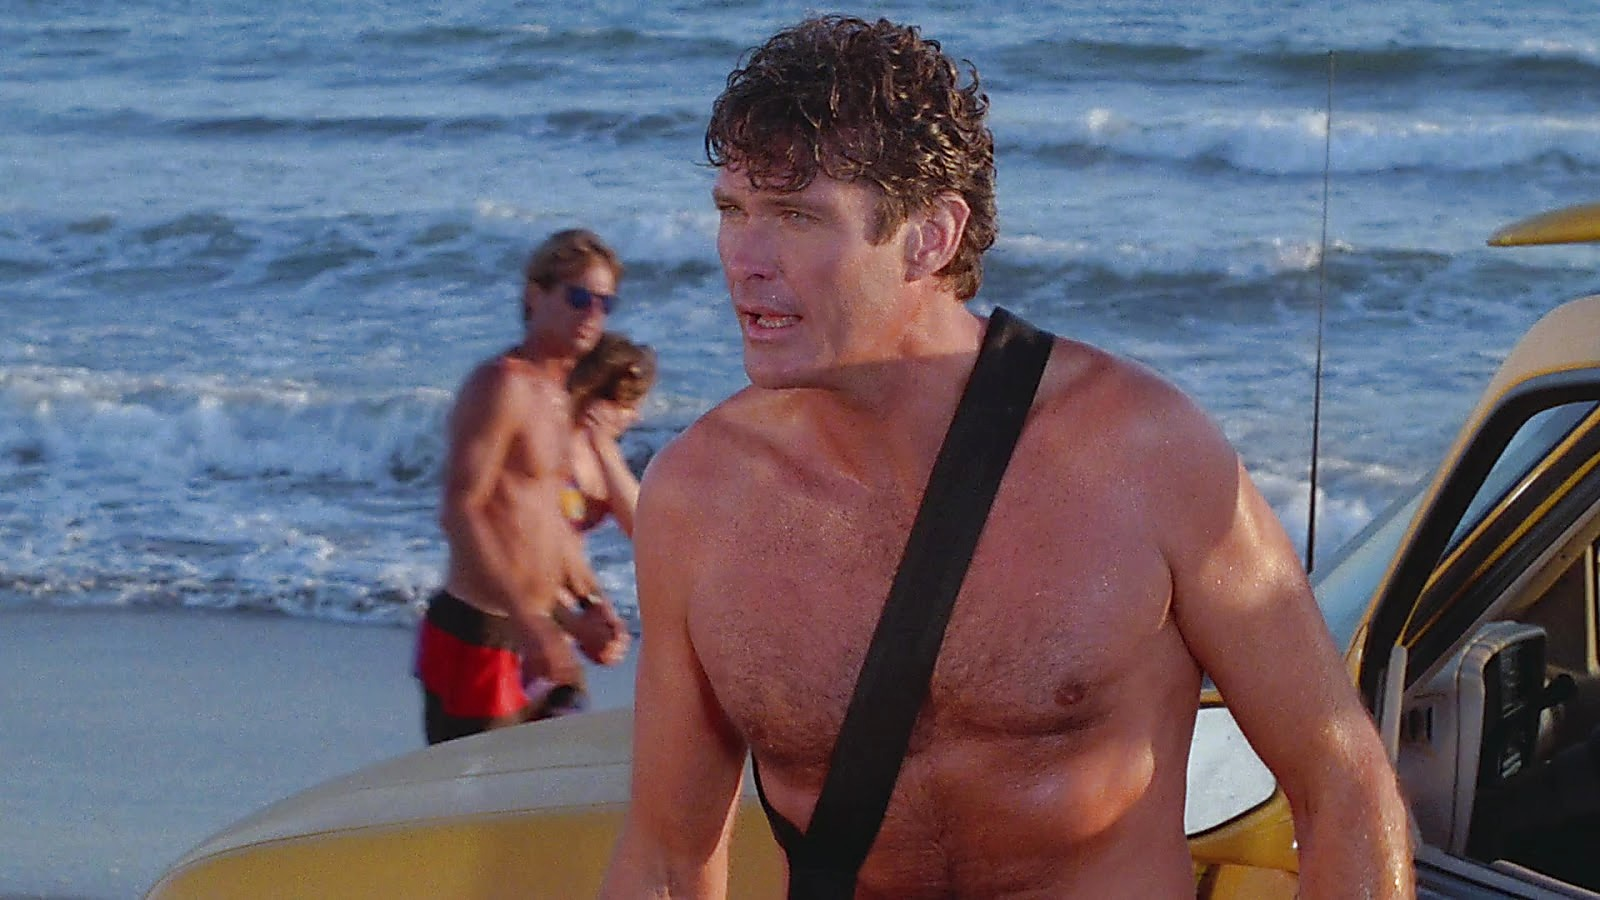 David Hasselhoff sexy shirtless scene May 15, 2019, 10am